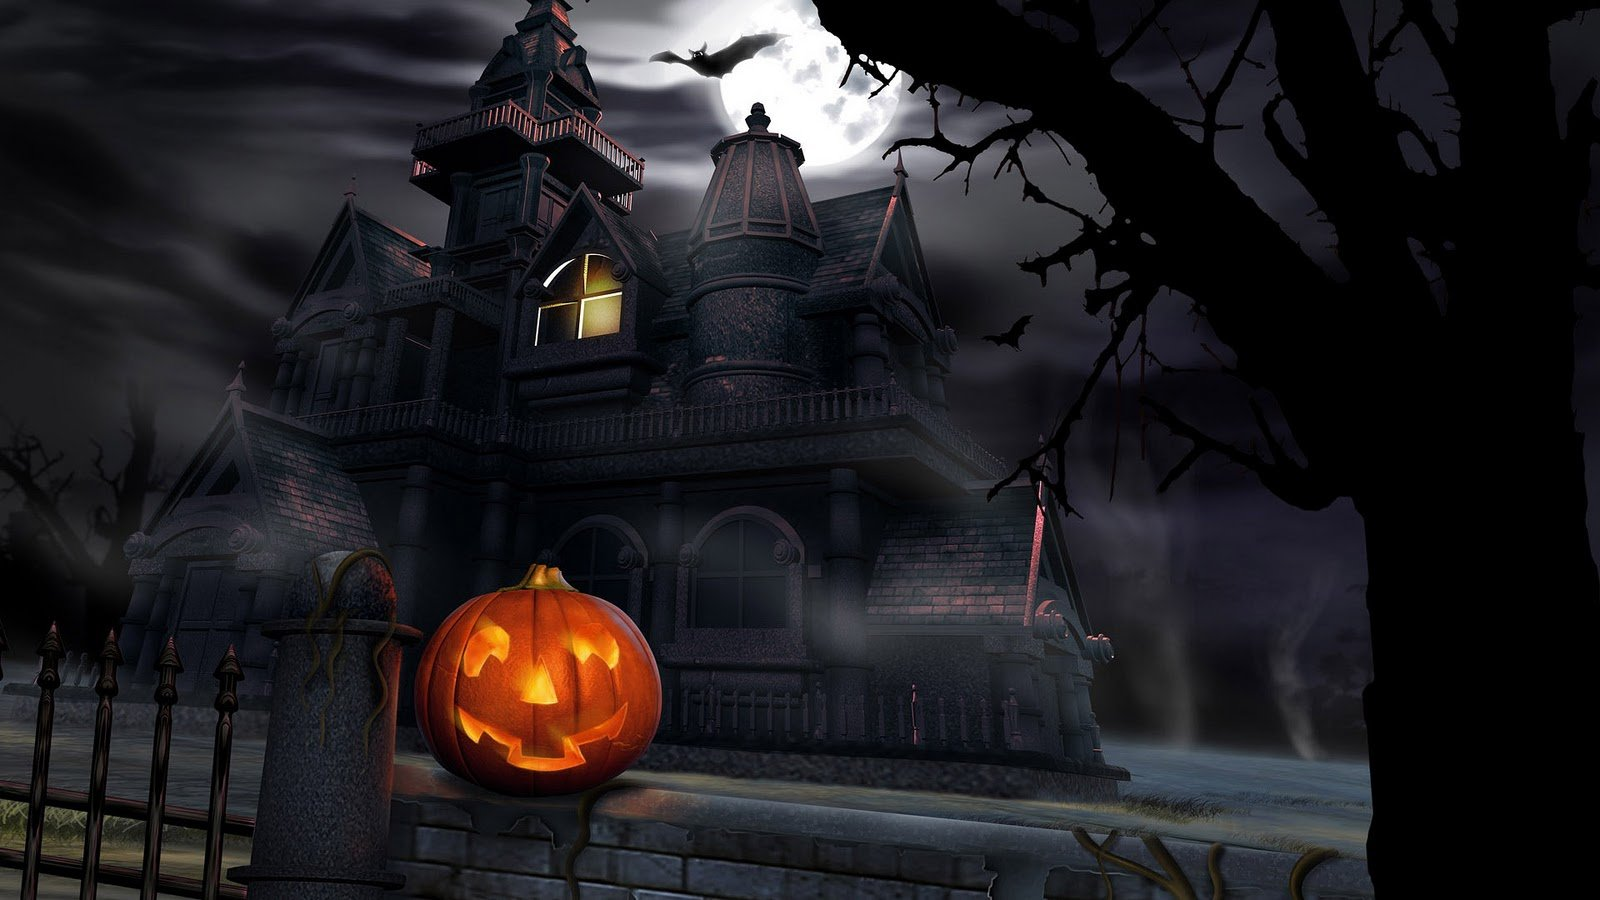 Best 3D Halloween Horror Wallpaper Full HD Wallpaper with 1600x900 1600x900